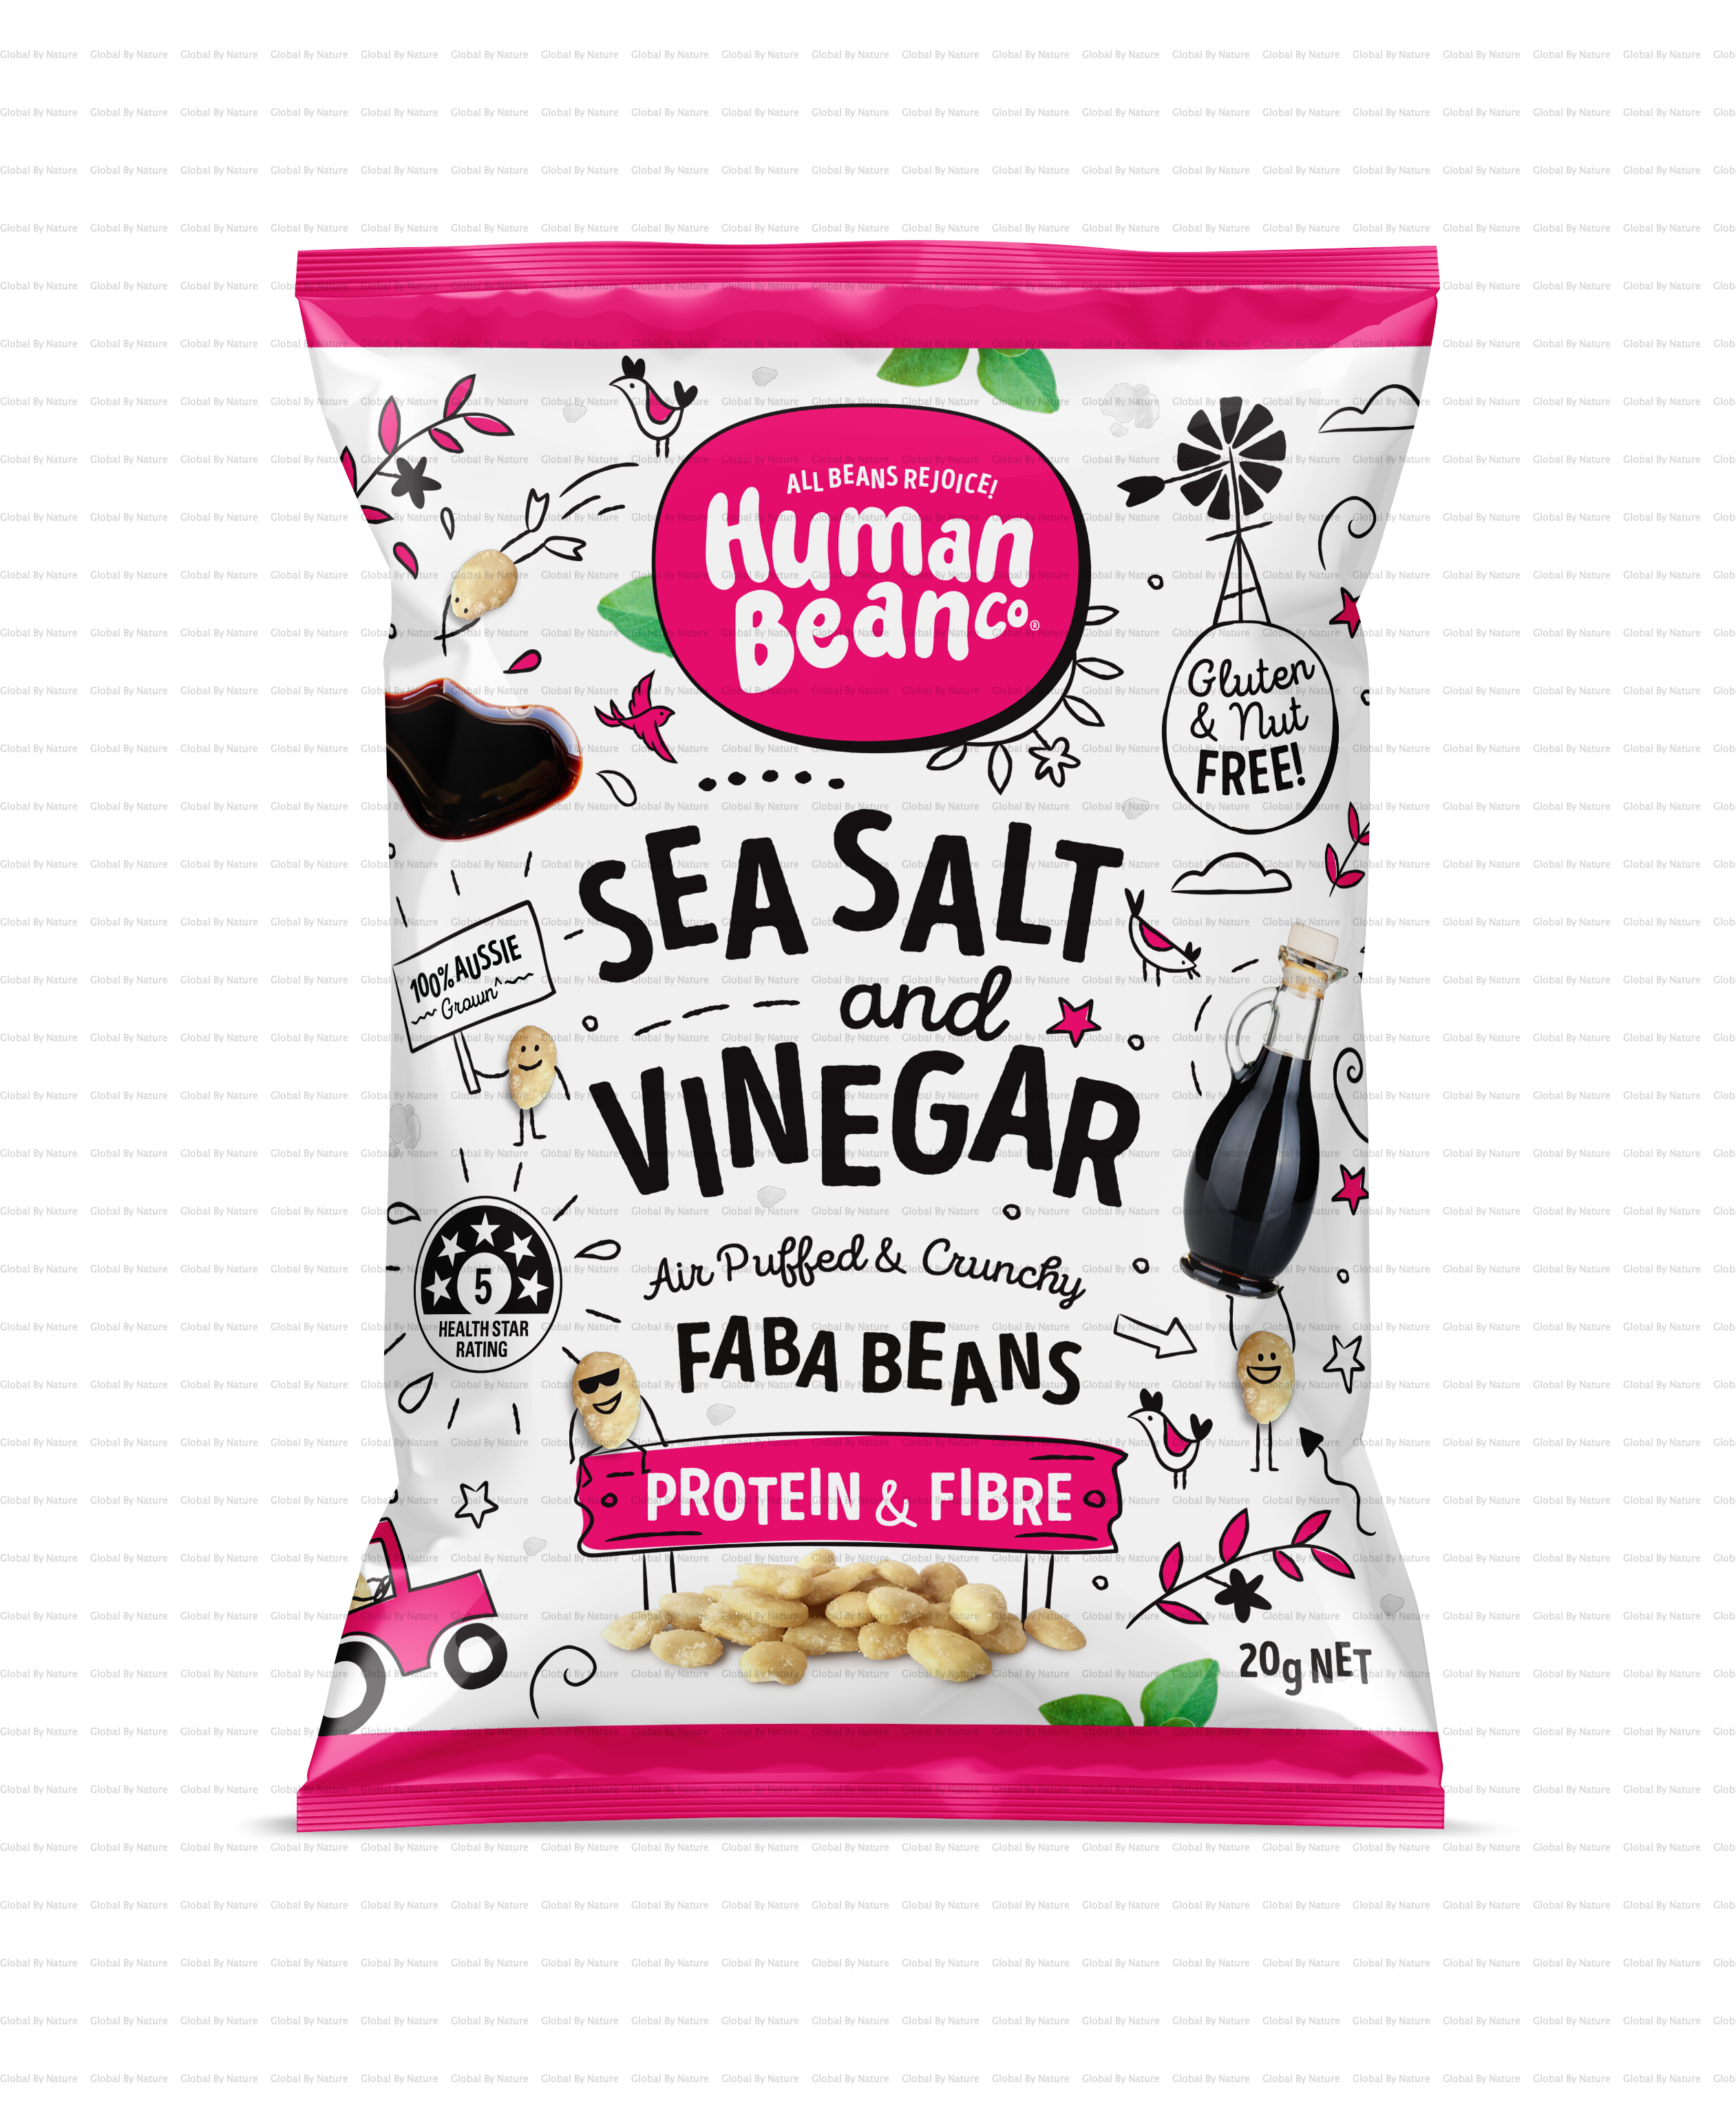 Human Bean Co Sea Salt & Vinegar Faba Beans 8 x 20g